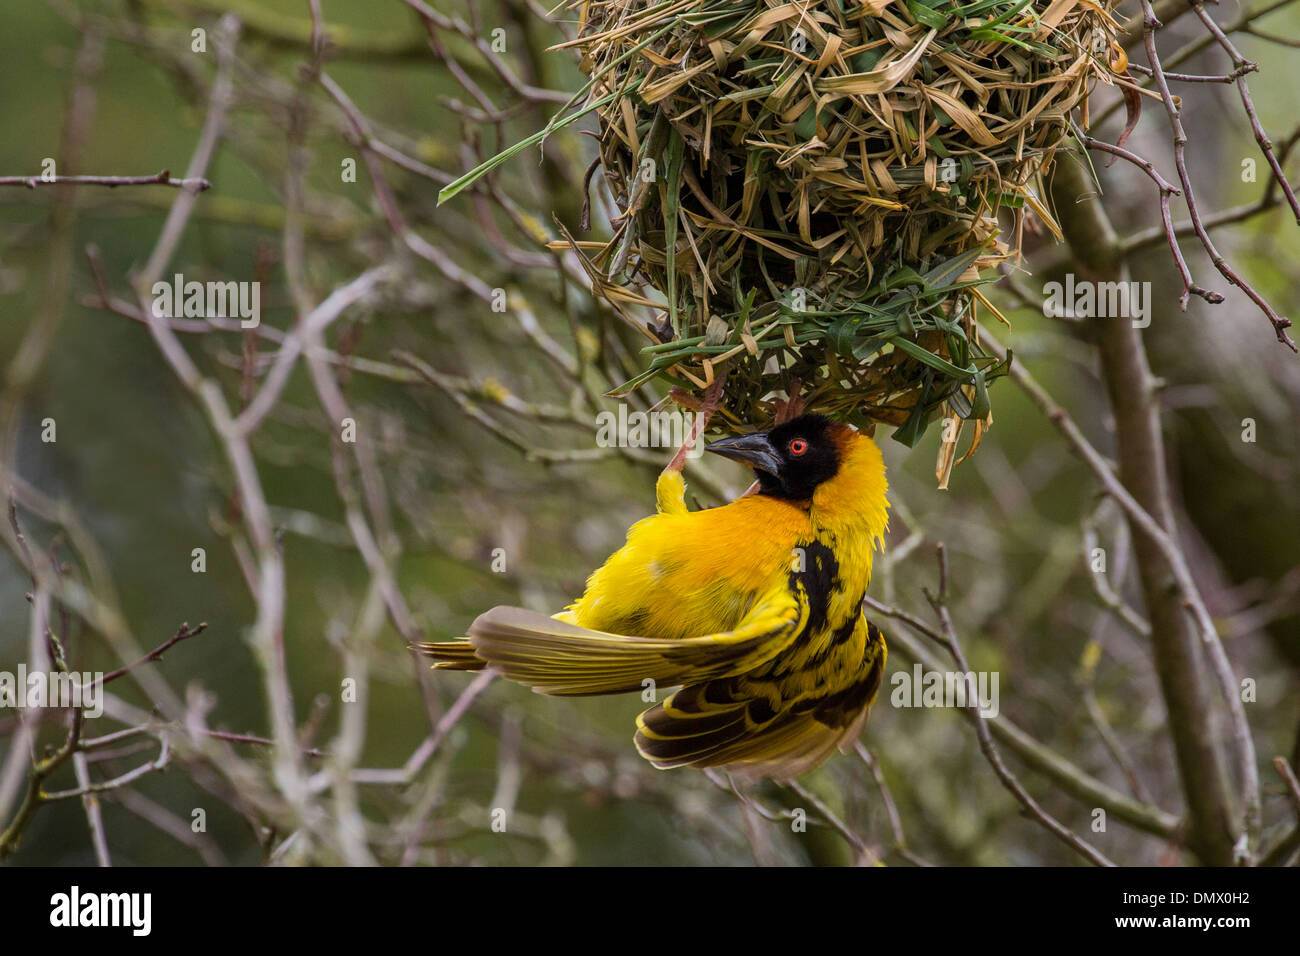 Black-headed Weaver and nest - Stock Image